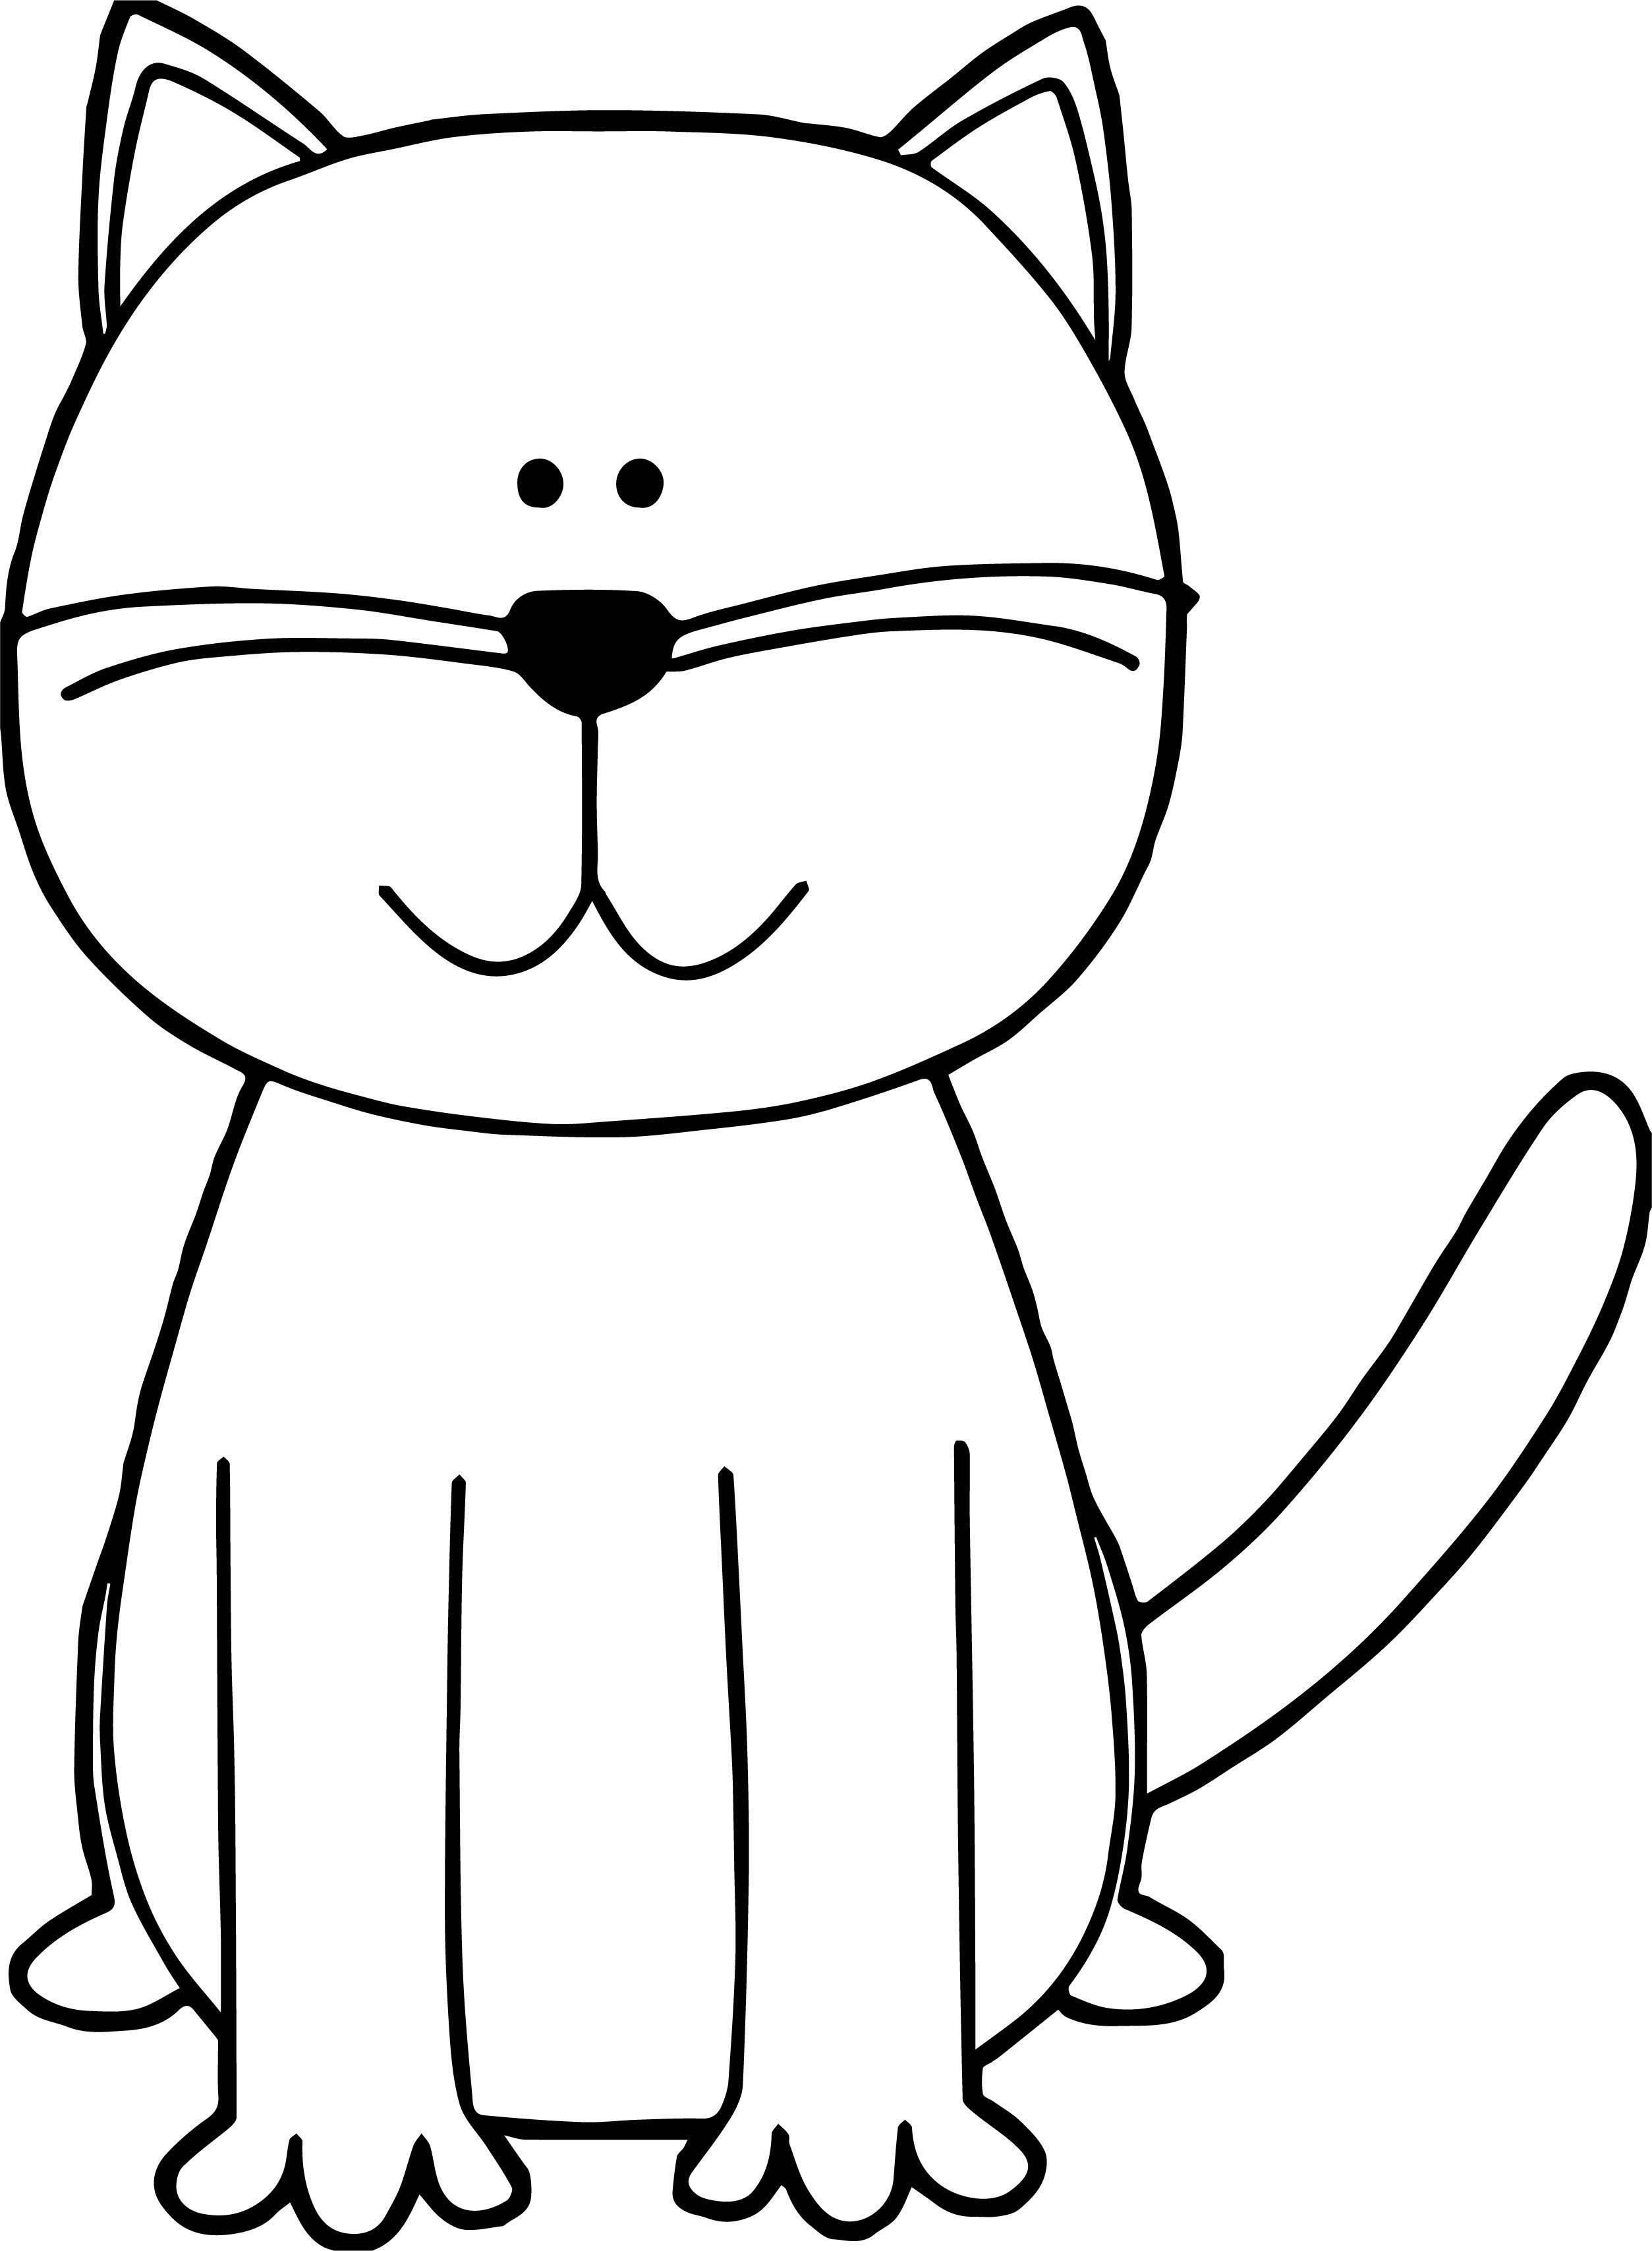 No Cat Coloring Page